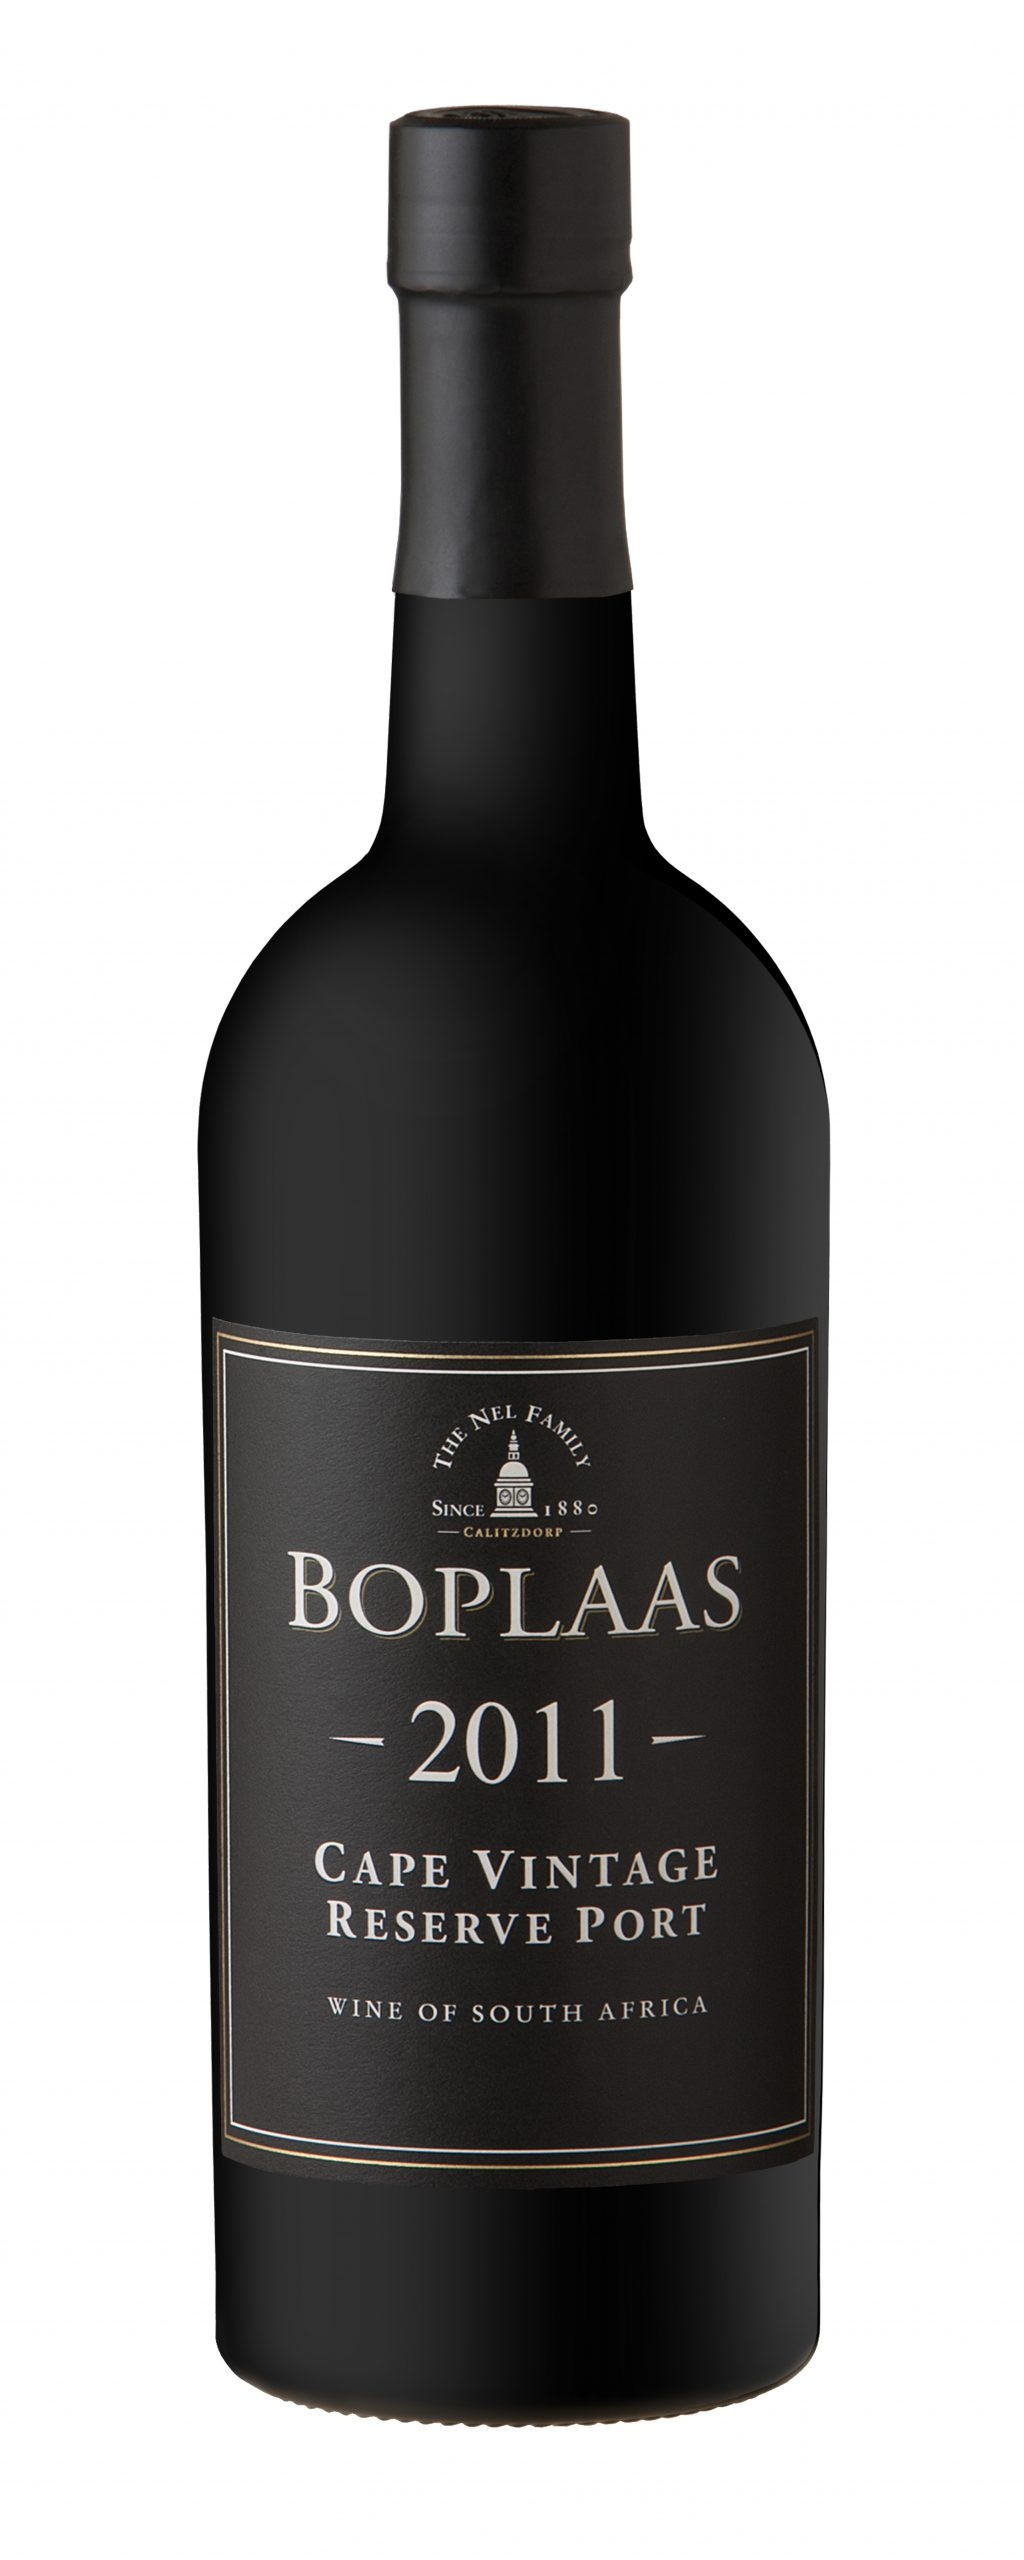 Boplaas Port Re-affirmed As One Of South Africa's Great, Age-able Wines photo